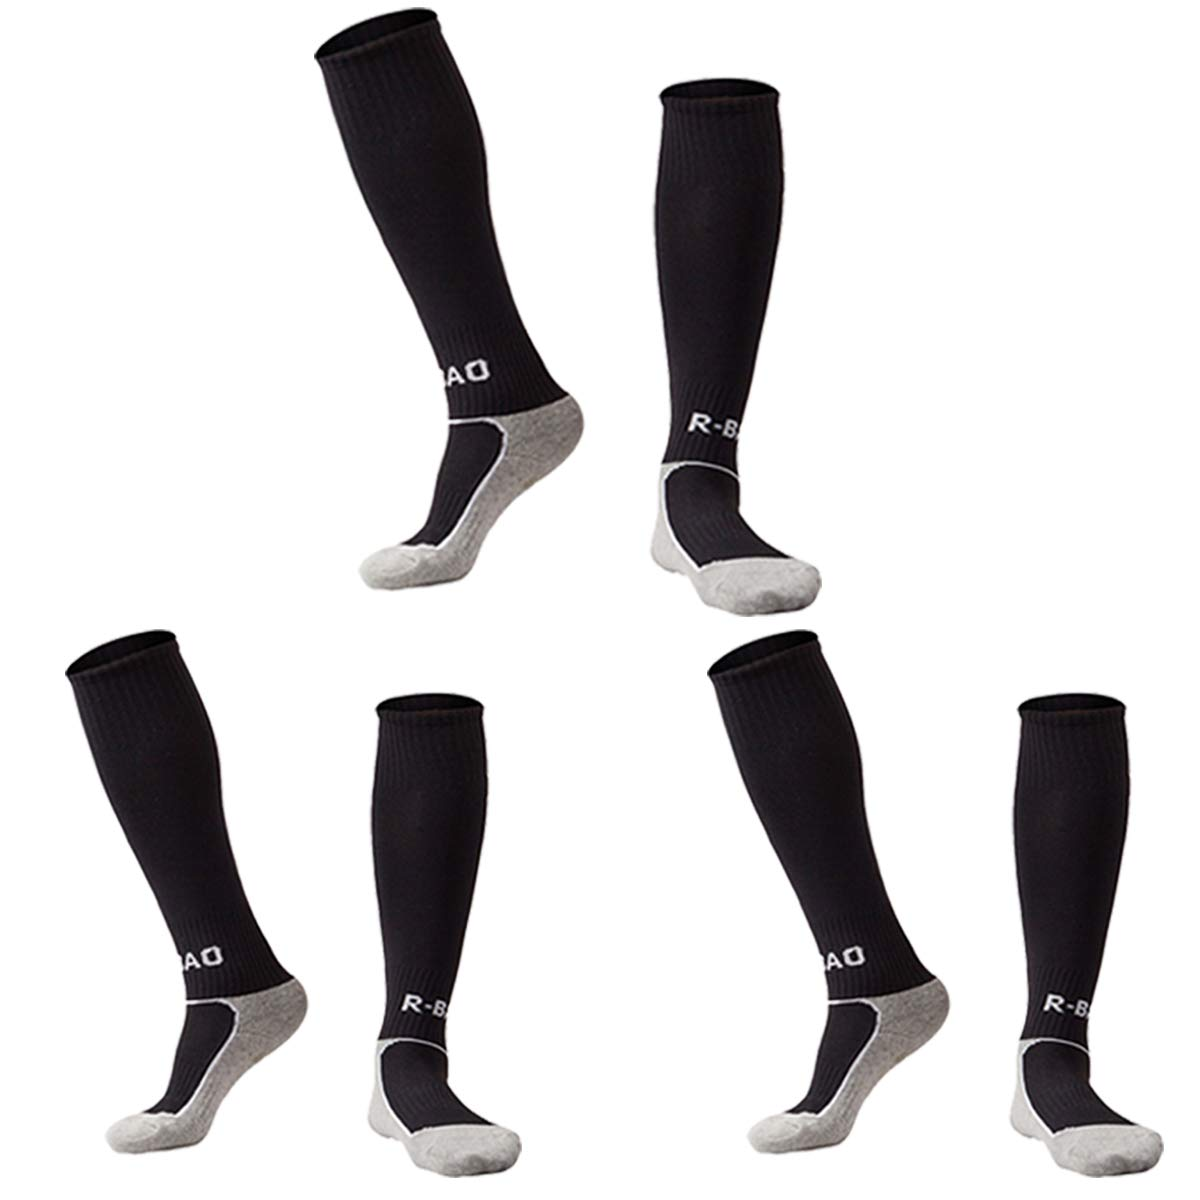 Toddler Soccer Socks Long Football Compression Sports Socks 3 Pack Black XS by KALAKIDS